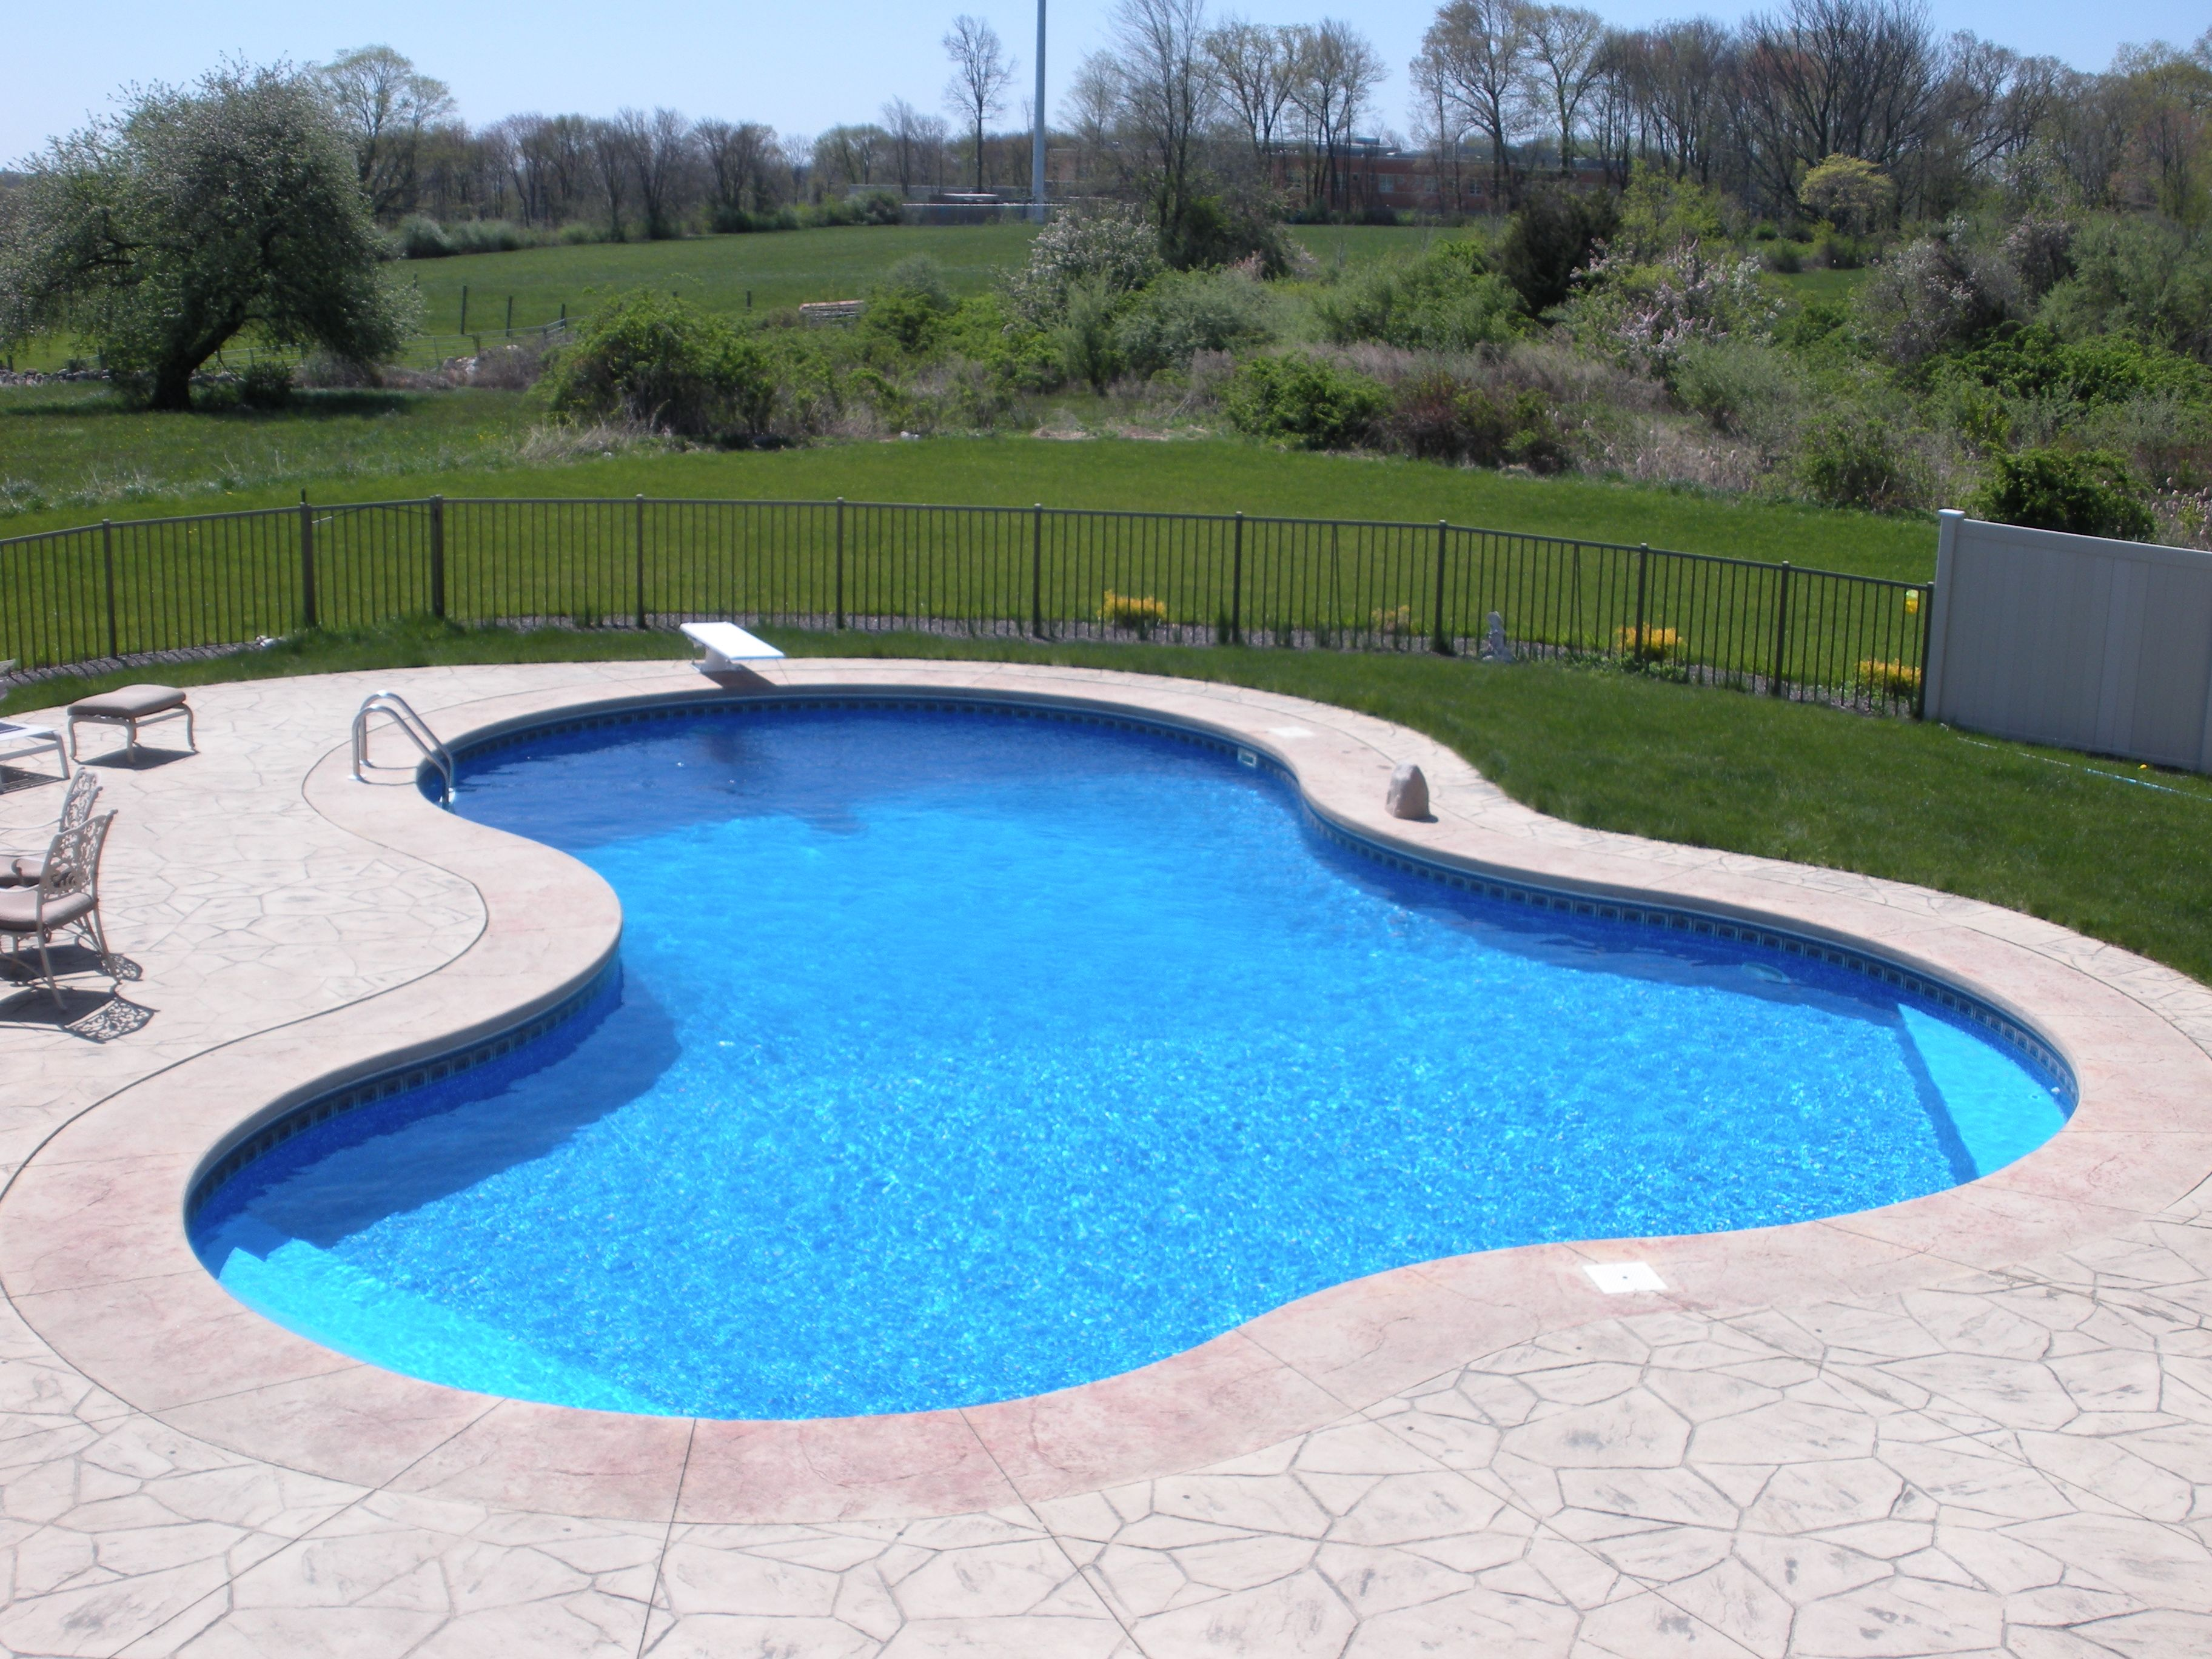 Lagoon Shaped In Ground Pool Legacyedition A1pools A1poolsct A1poolsandspas Affordable Swimming Pools Pool Designs Backyard Pool Landscaping